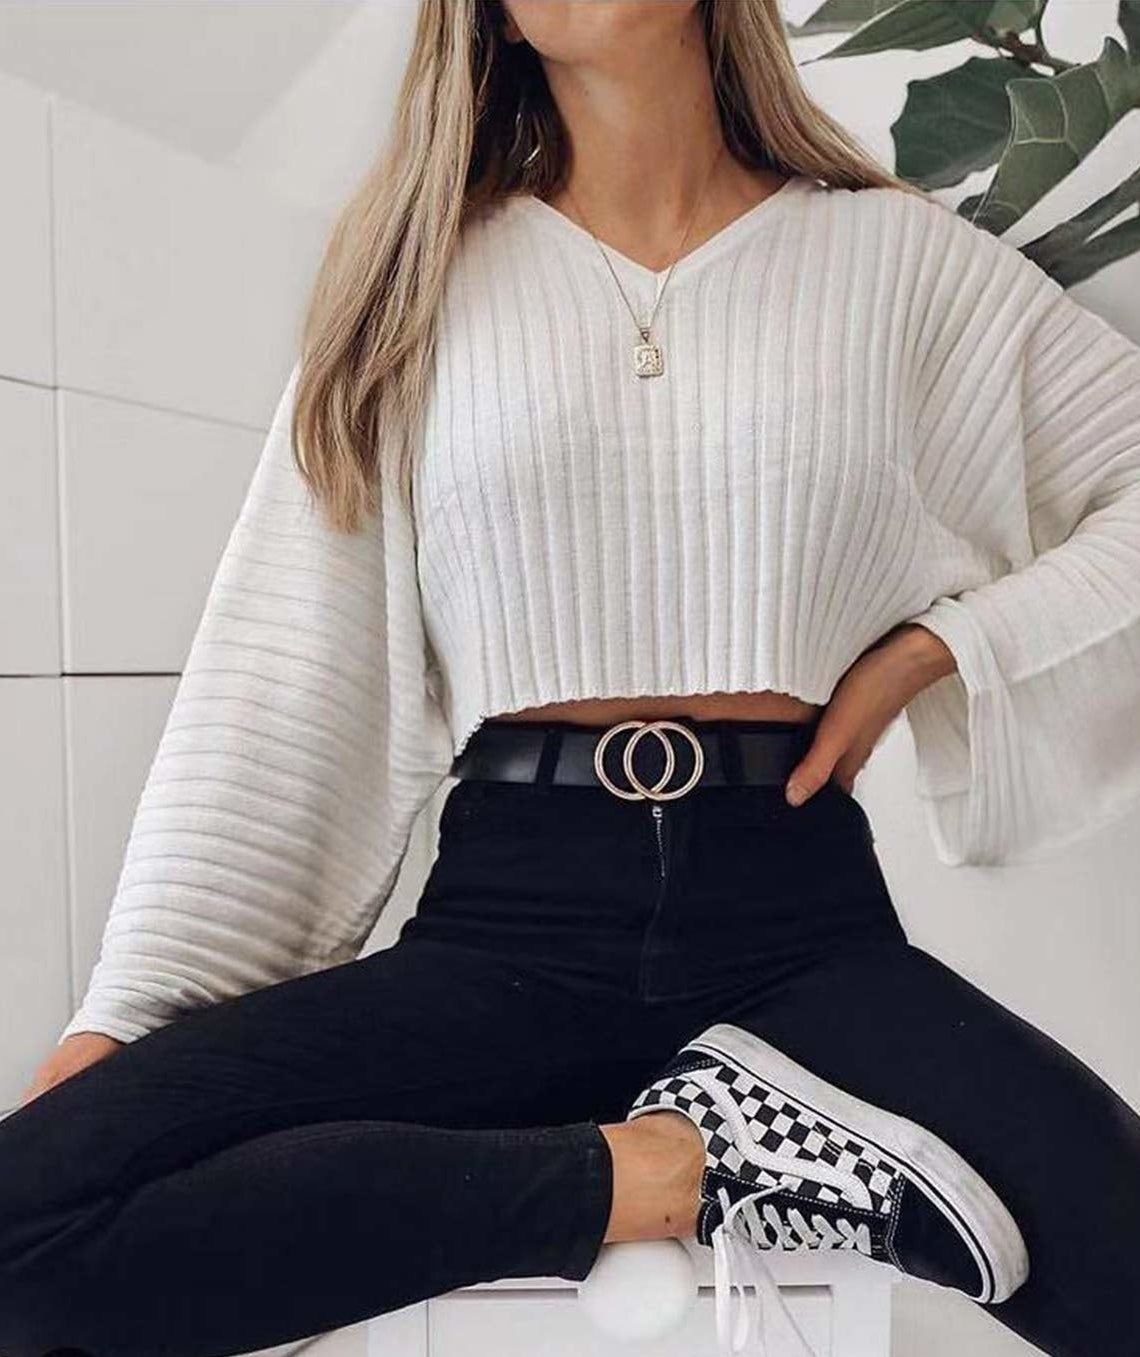 A person siting with their hand on their hip They are wearing a long sleeved shirt, jeans, and a belt with a buckle in the shape of two interlocked circles